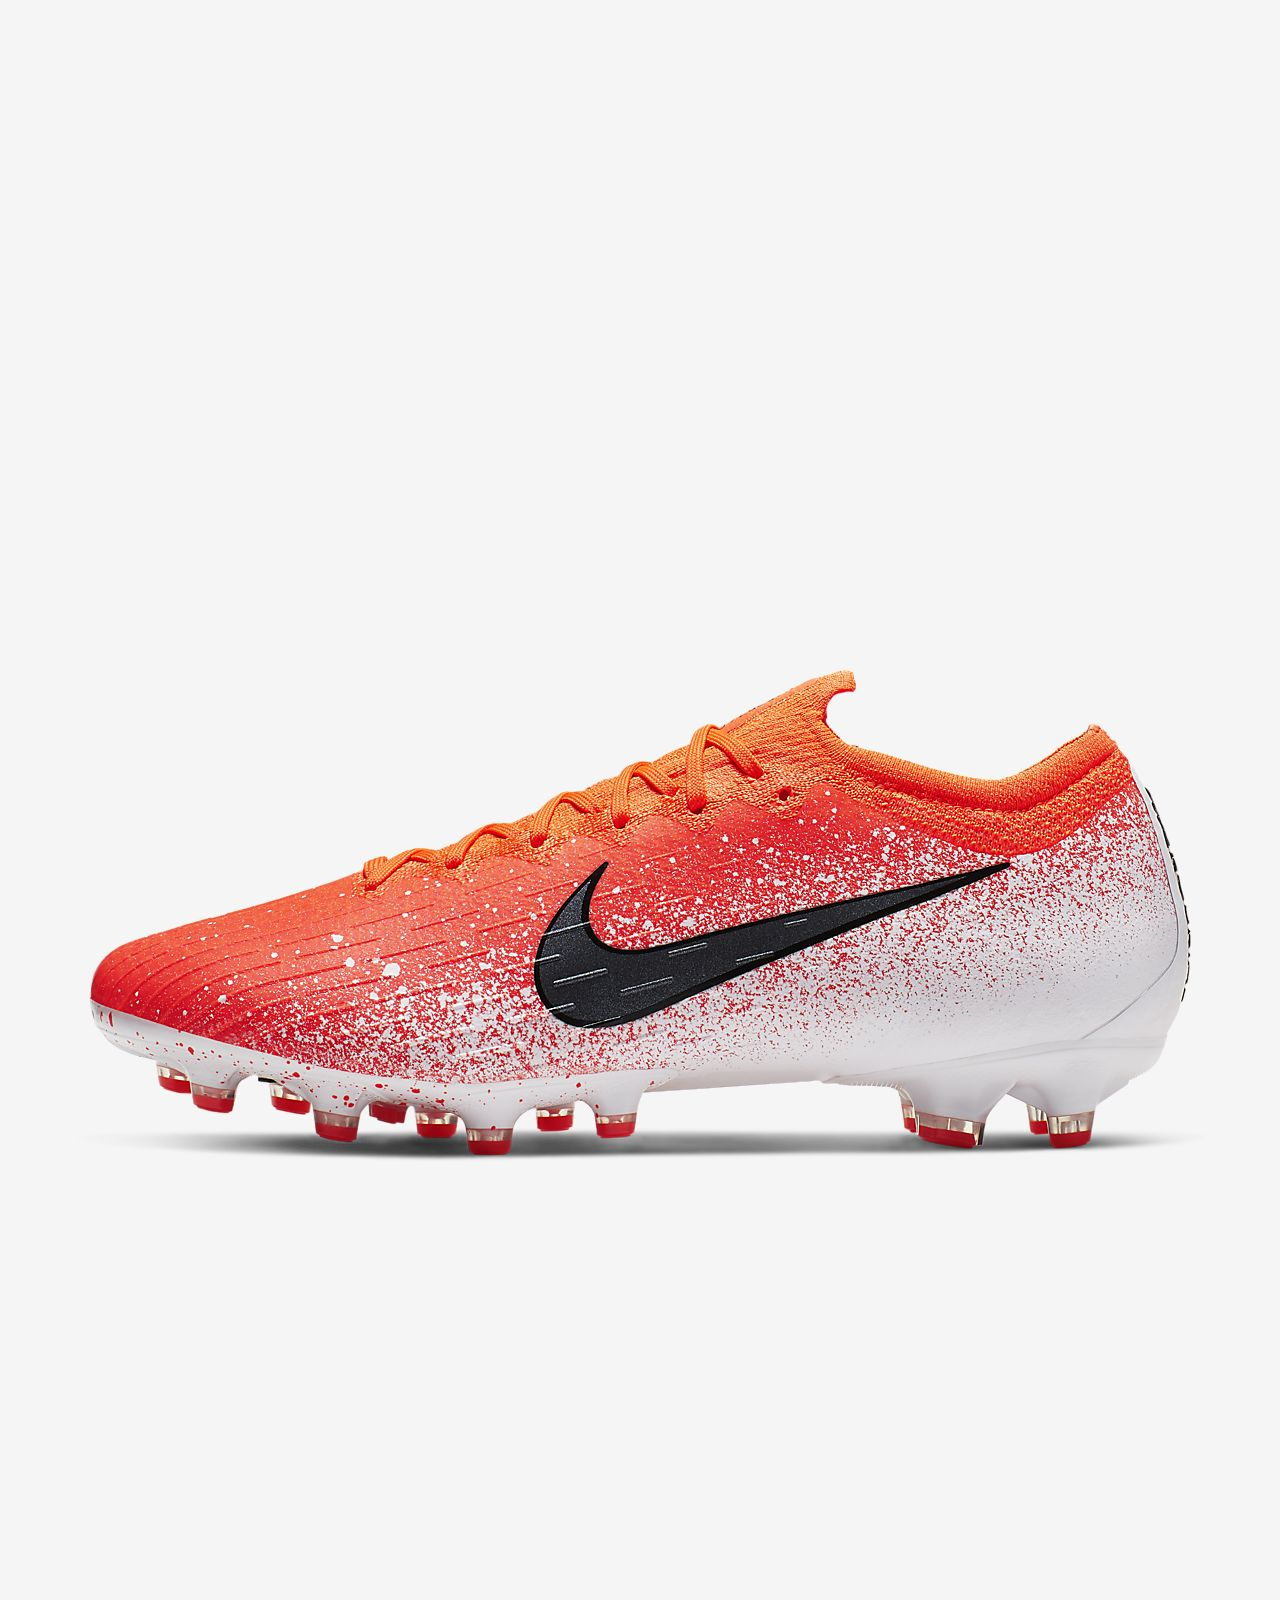 new style e9f2d d9cb3 Nike Mercurial Vapor 360 Elite AG-PRO Artificial-Grass Football Boot